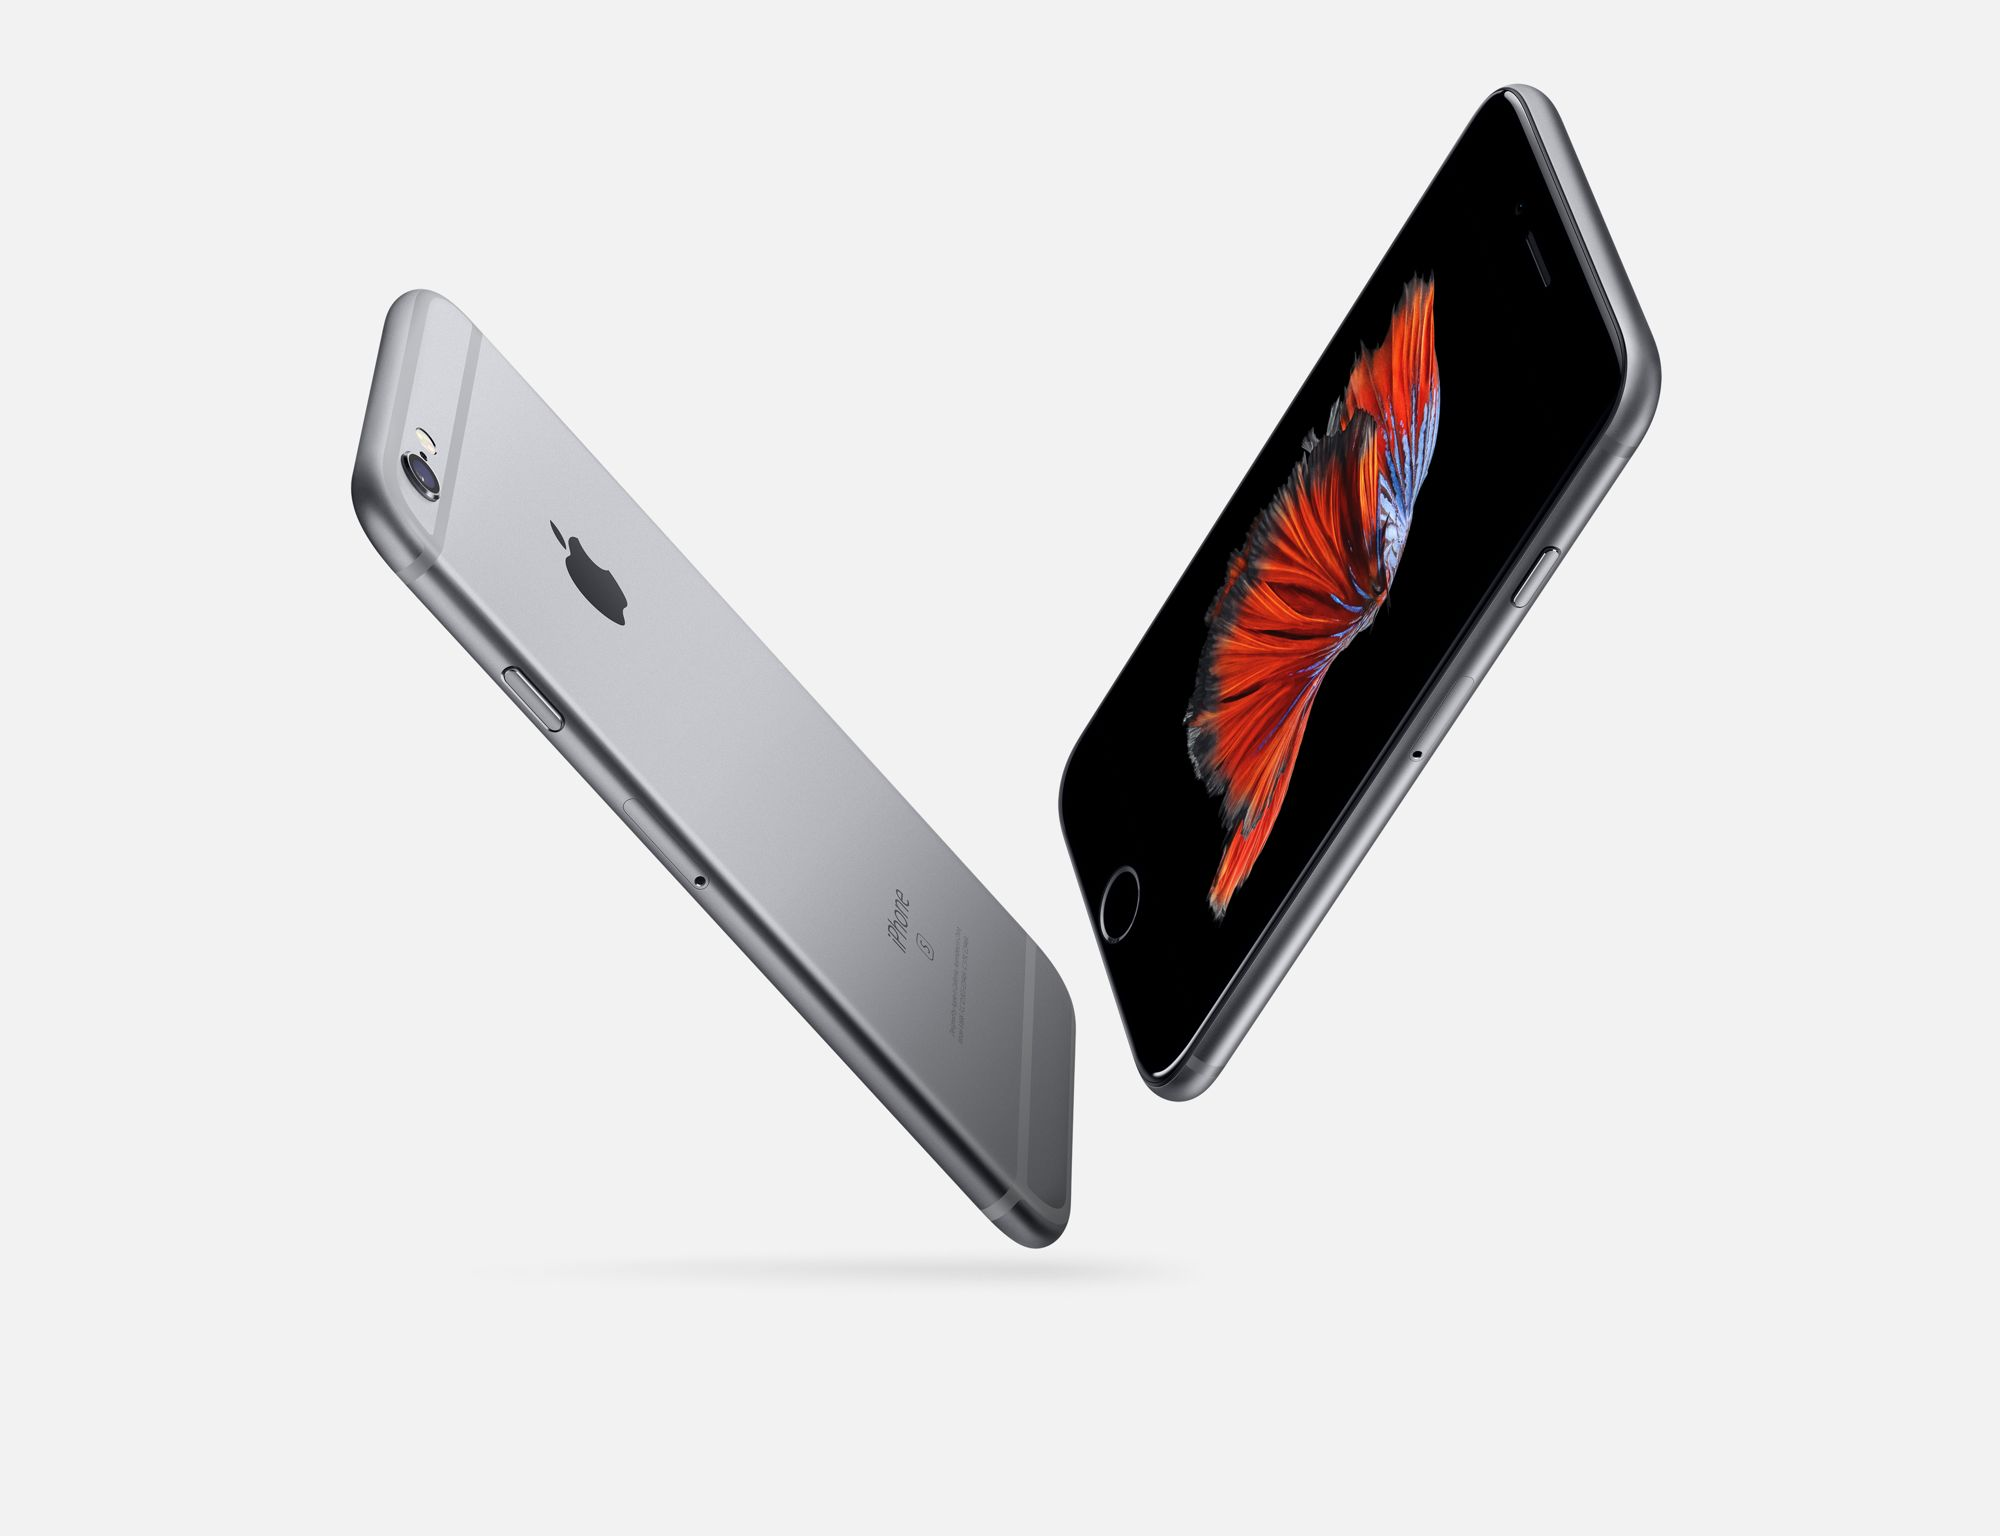 iPhone 6s (32GB, Silver)